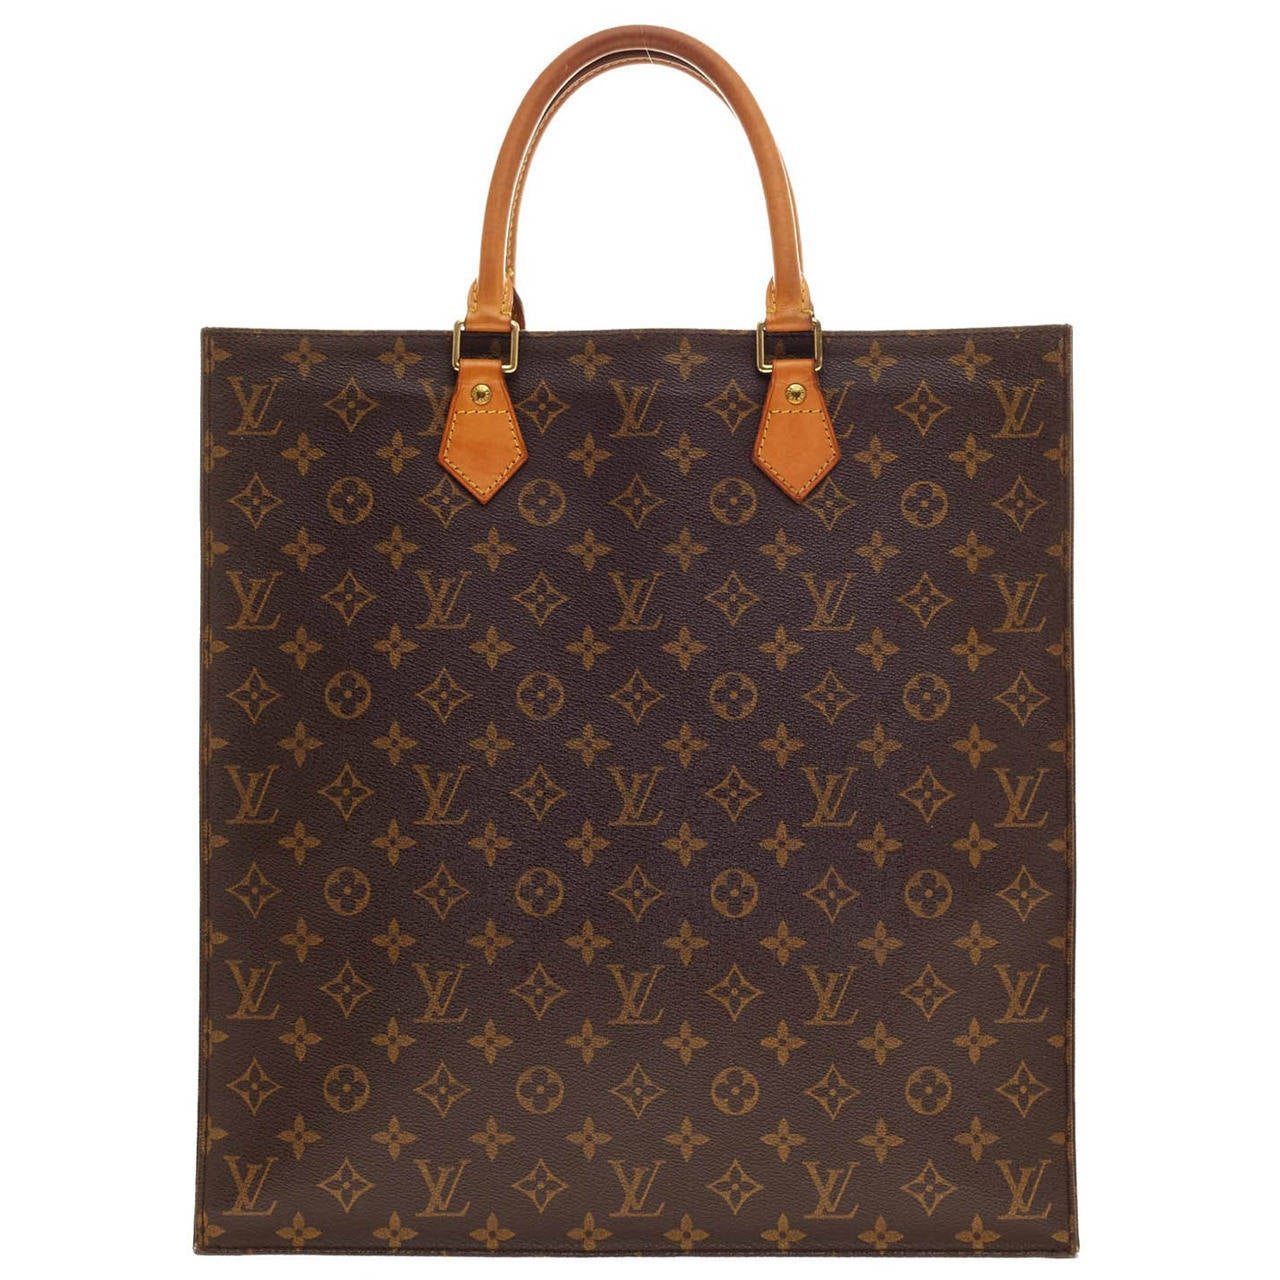 Louis vuitton sac plat monogram canvas gm at 1stdibs for Louis vuitton monogram miroir sac plat